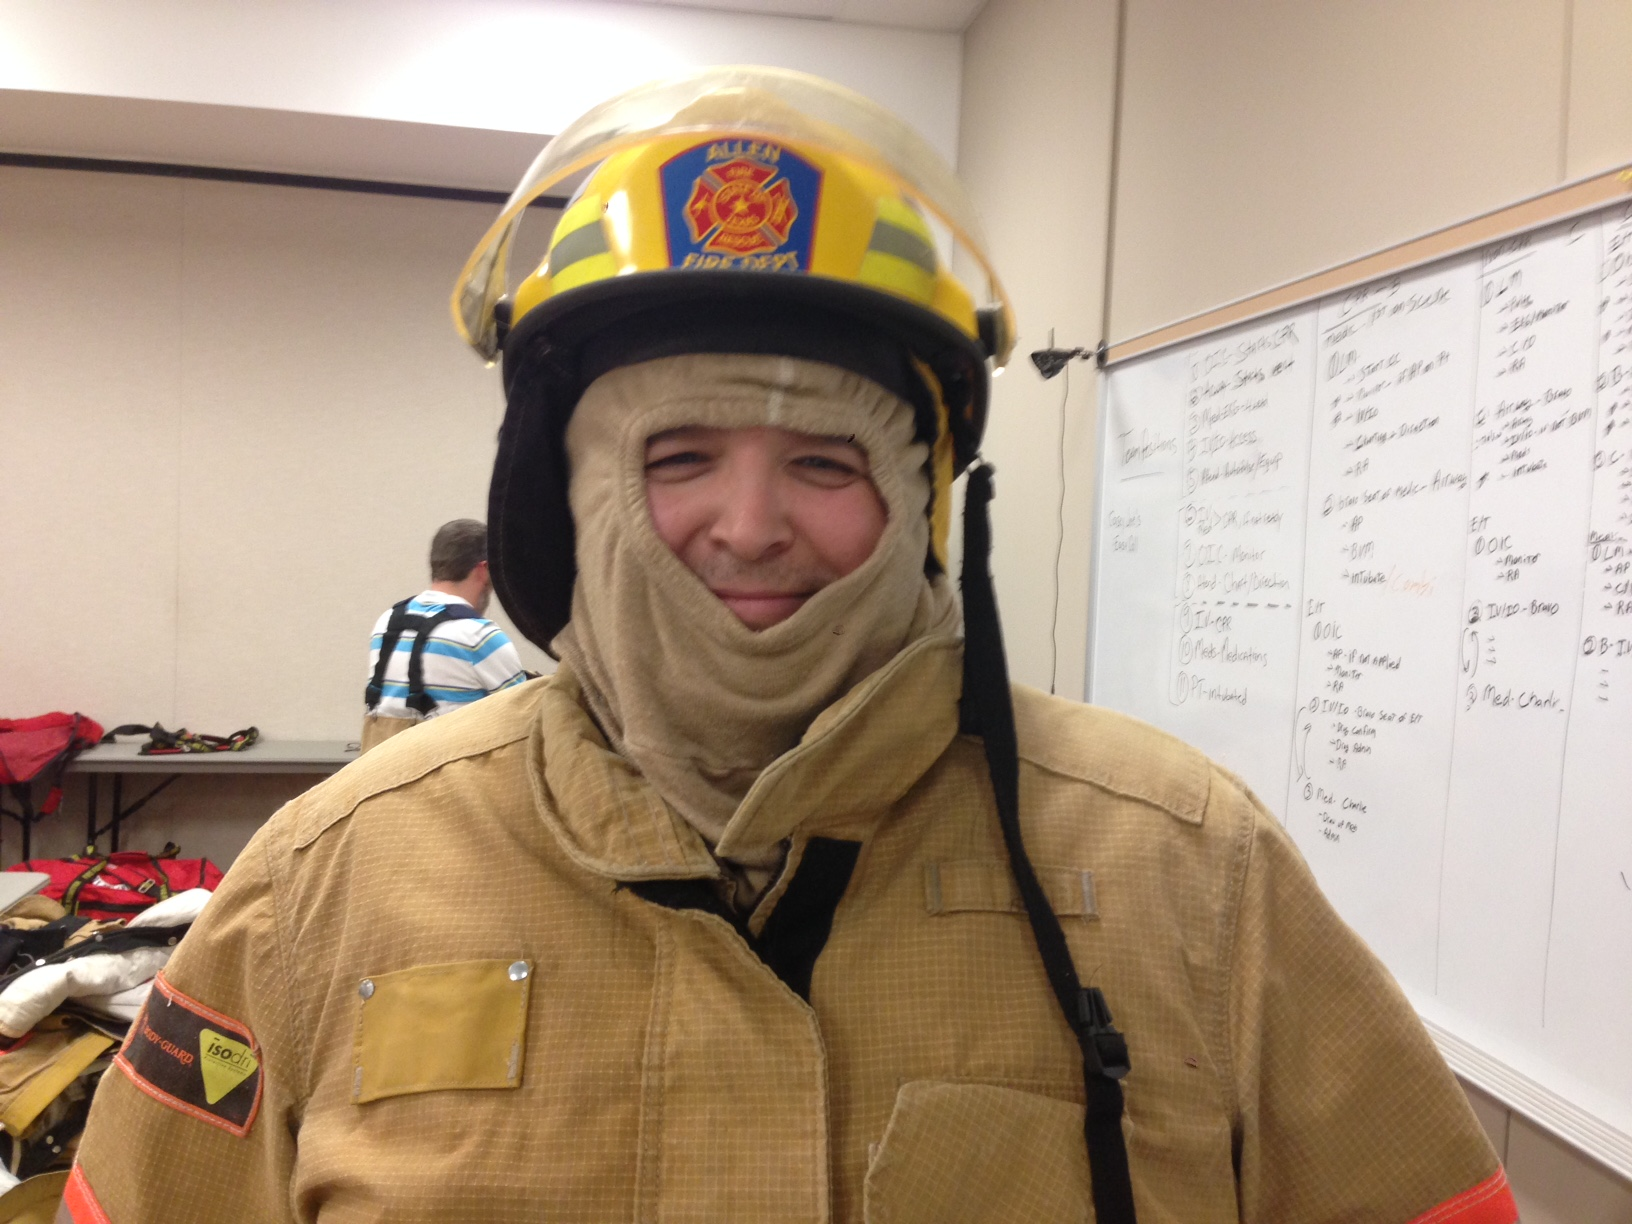 Allen Citizen's Fire Academy – Bunker Gear Night